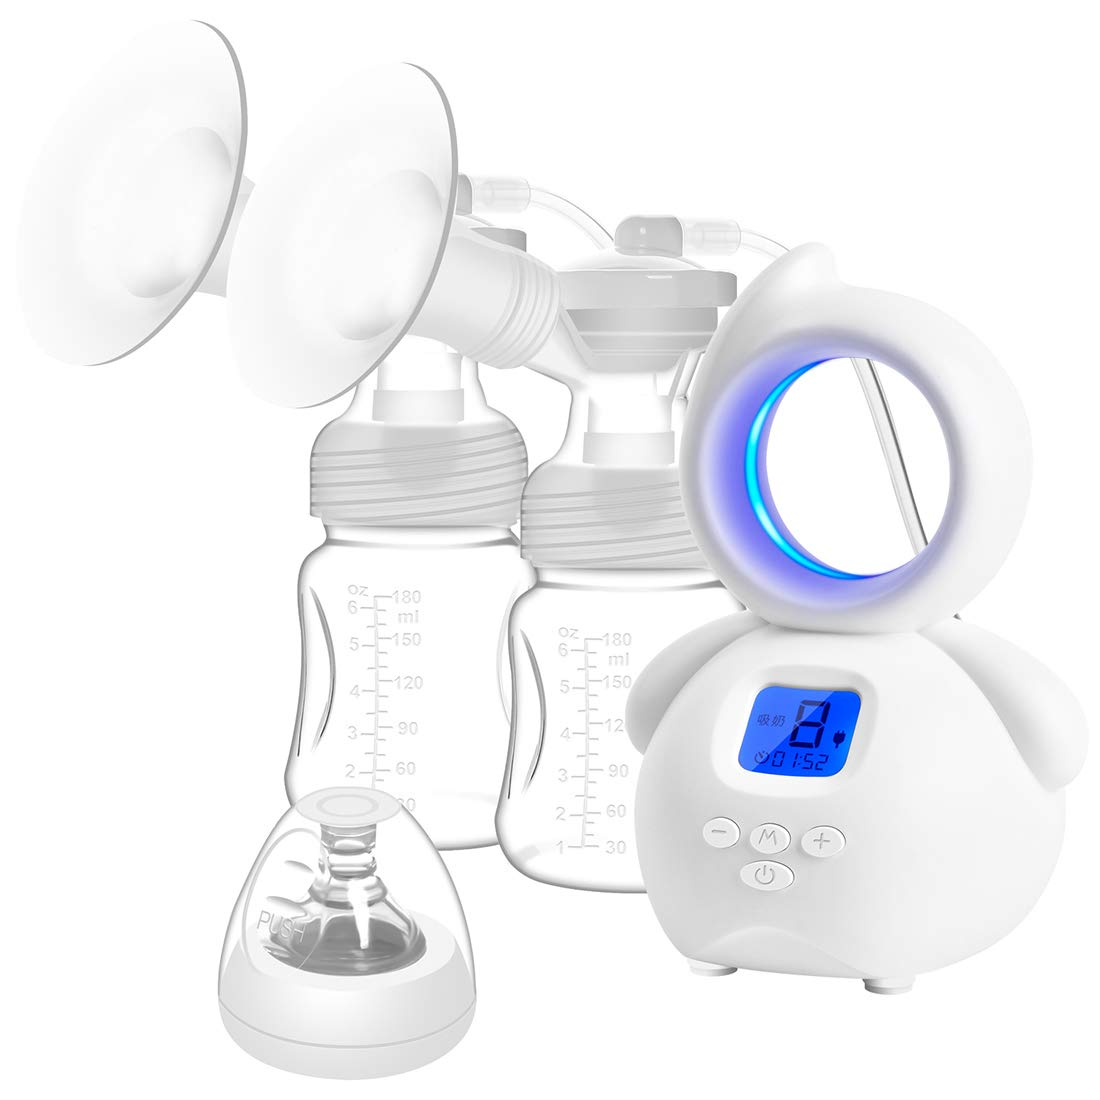 Double Electric Breast Pump - YIHUNION Portable Silicone Breastfeeding Pump for Baby Feeding Milk Rechargeable 1200mAh Battery with Adjustable Massage & Suction Level and Backflow Protector